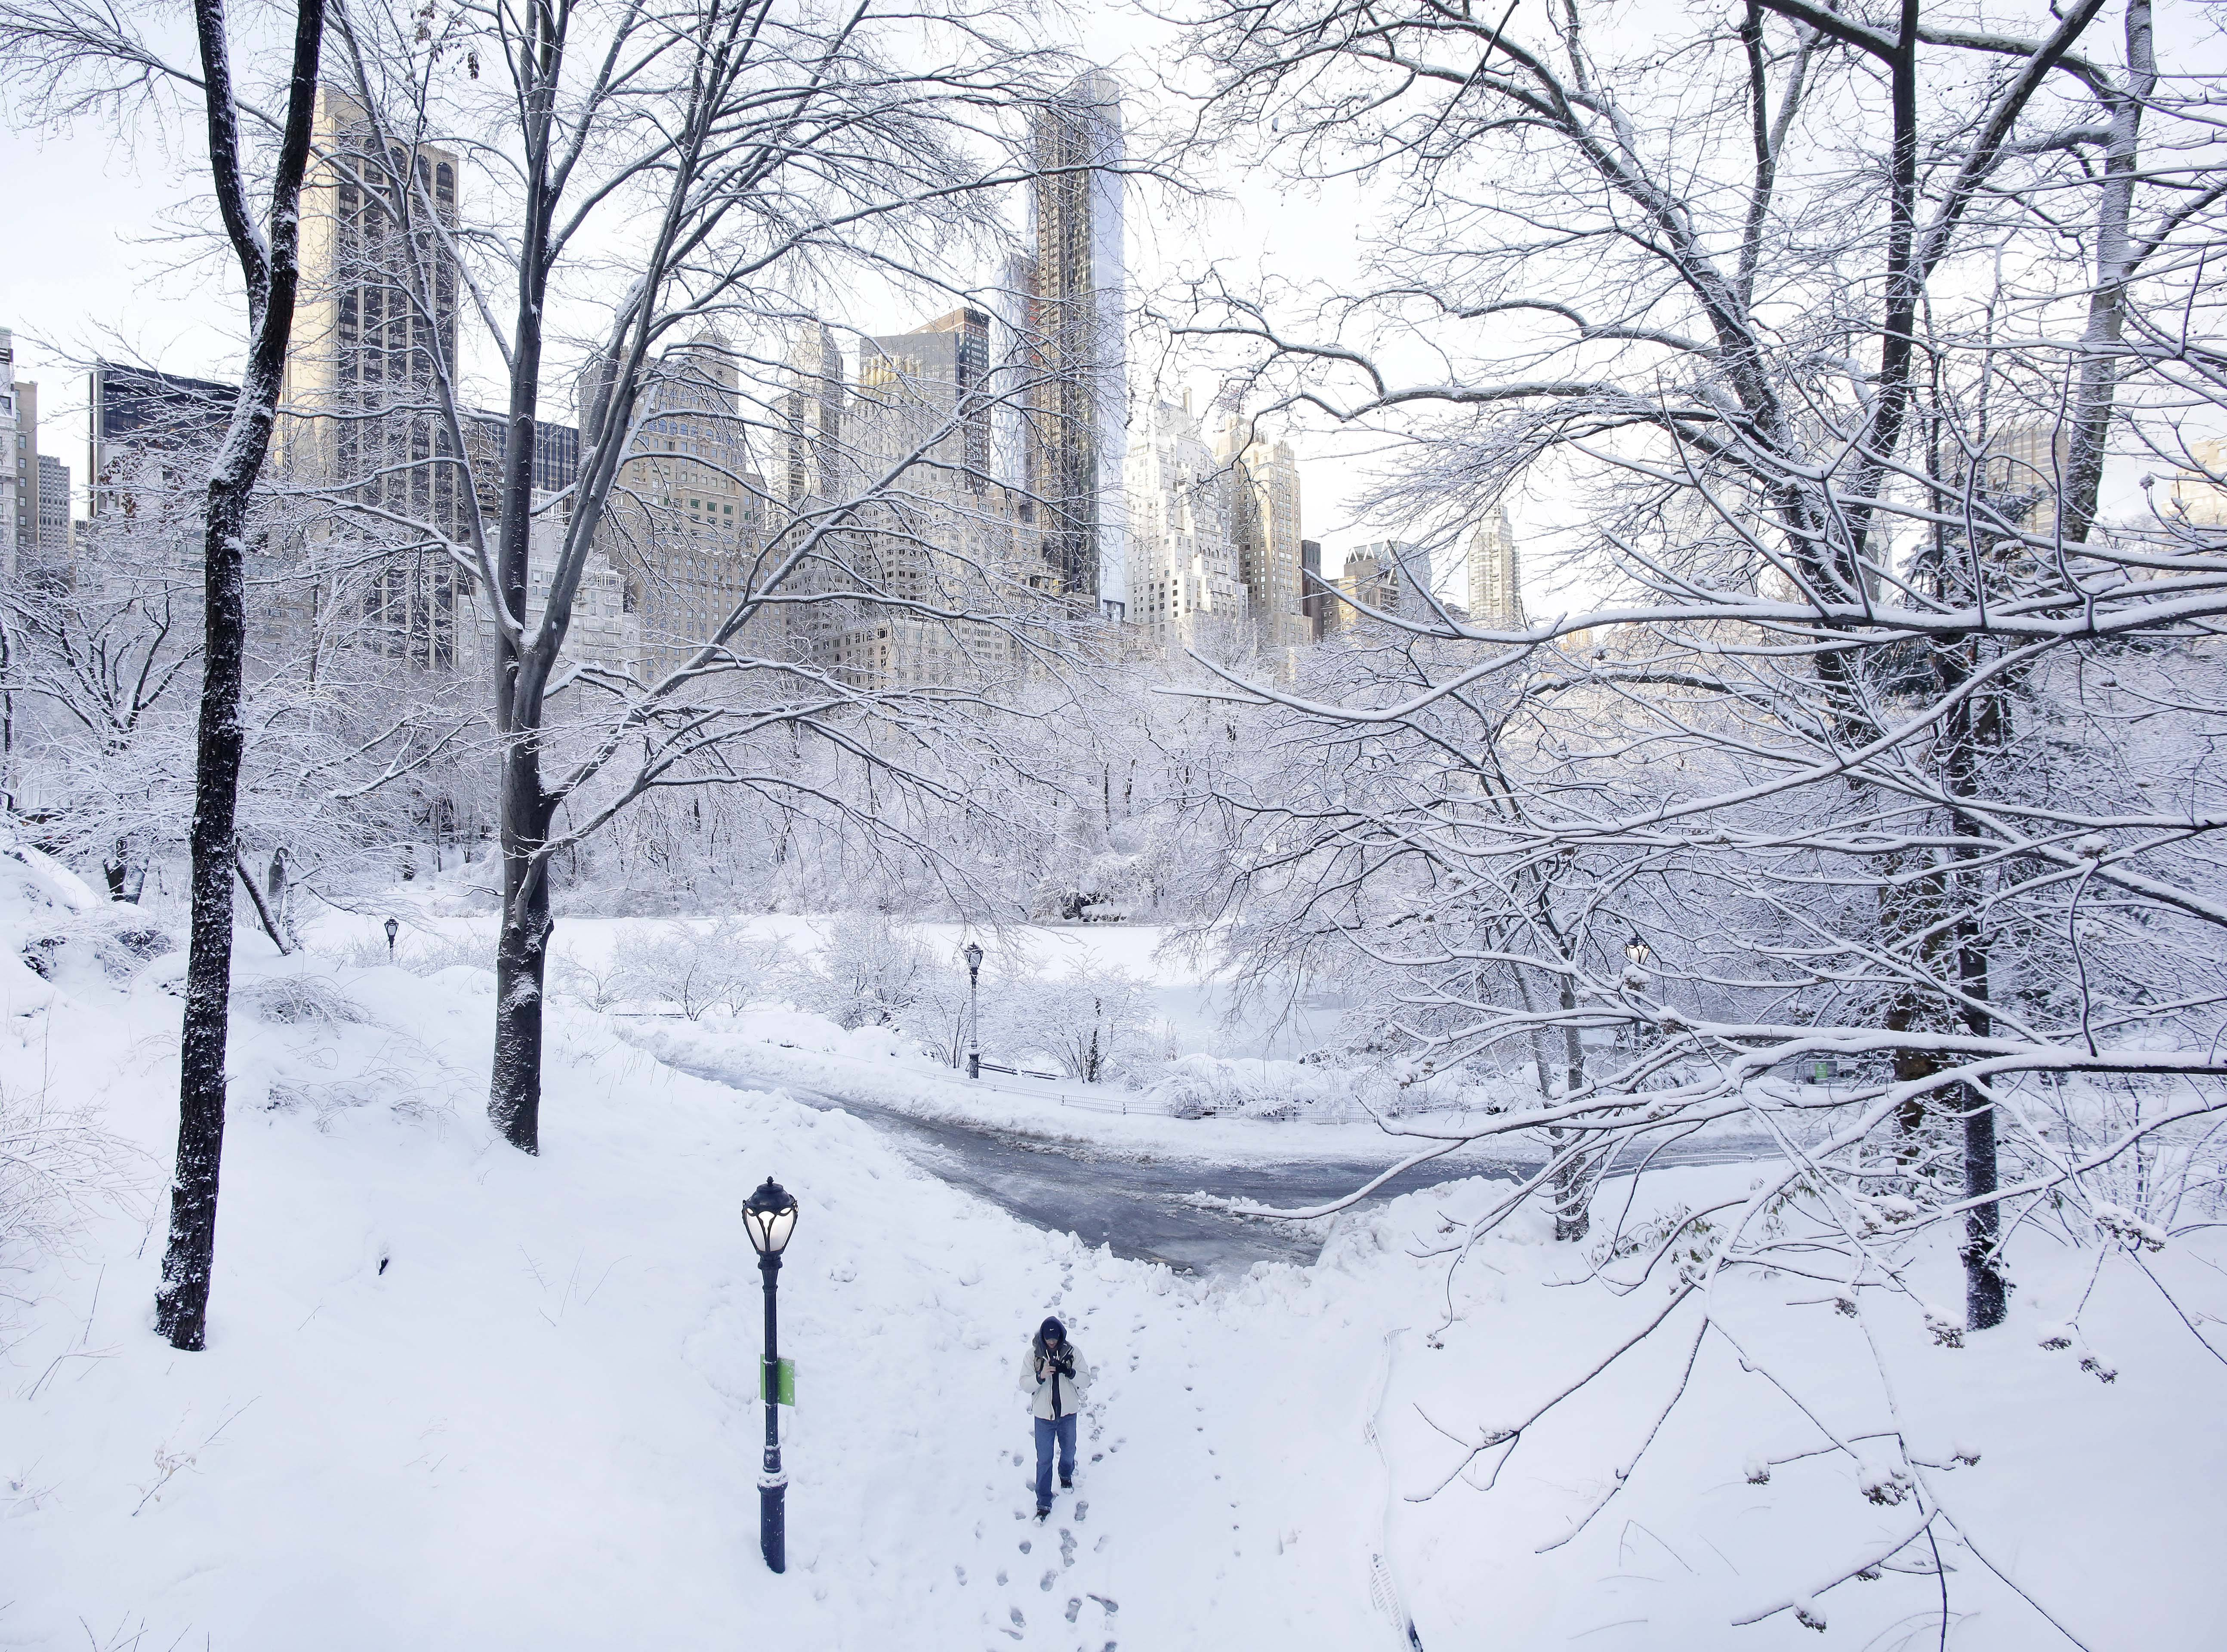 A photographer walks along a snow-covered path in Central Park, Friday, Feb. 14, 2014 in New York. Yet another winter storm brought snow and ice to the East Coast.